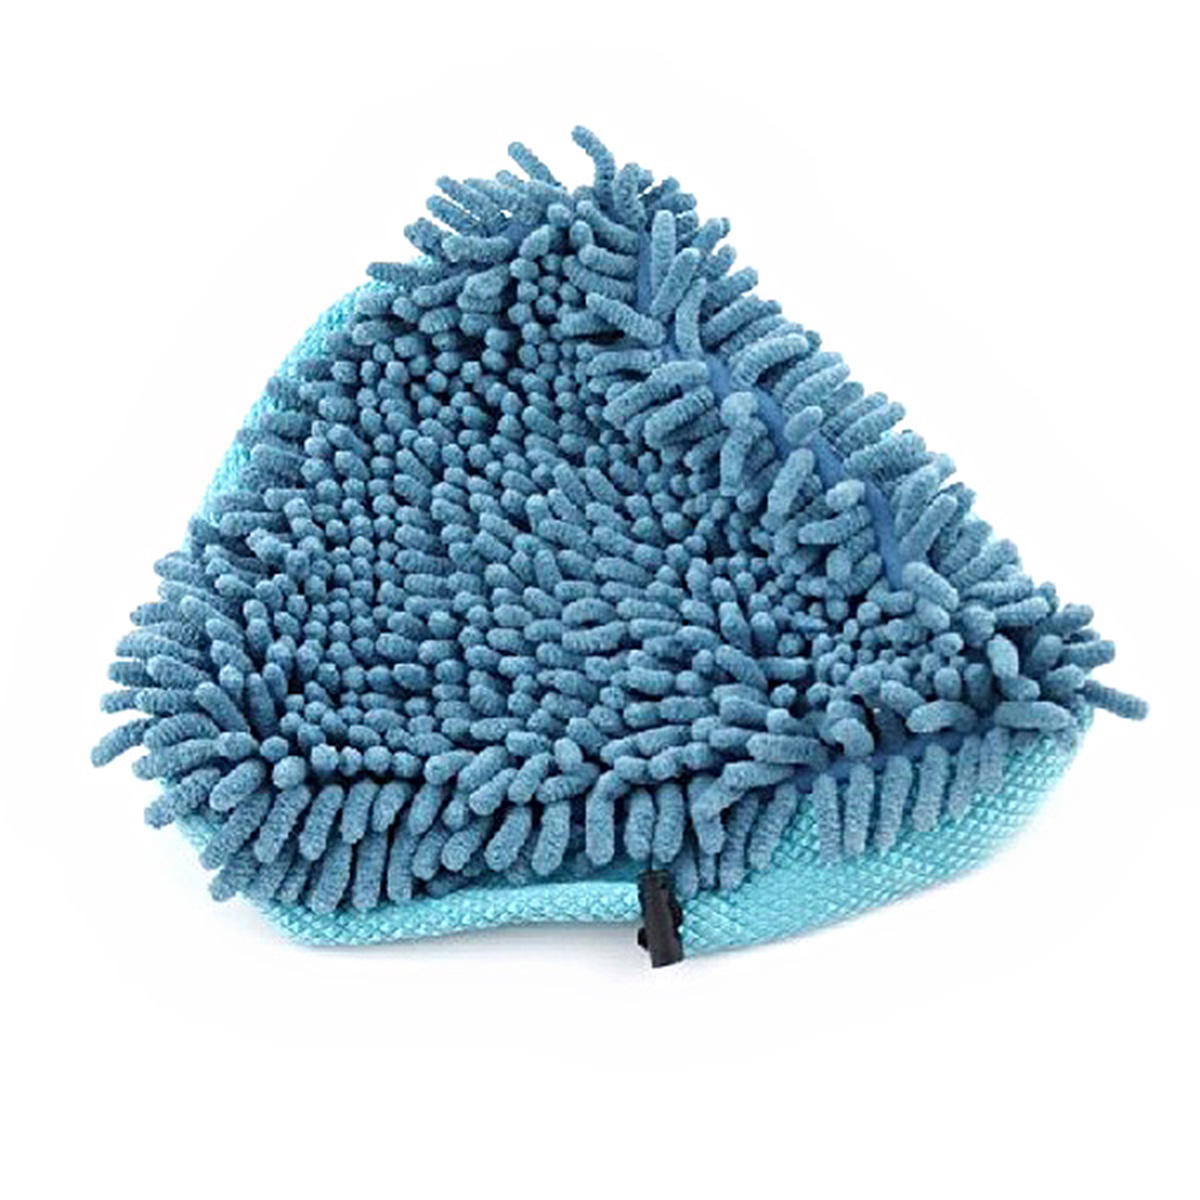 3pcs Replacement Microfiber Cloth Washable Steam Mop Household Cleaning Tools for H2O Mop X5 /Vax X2 /Bionaire Steam Mop (Blue)(China (Mainland))